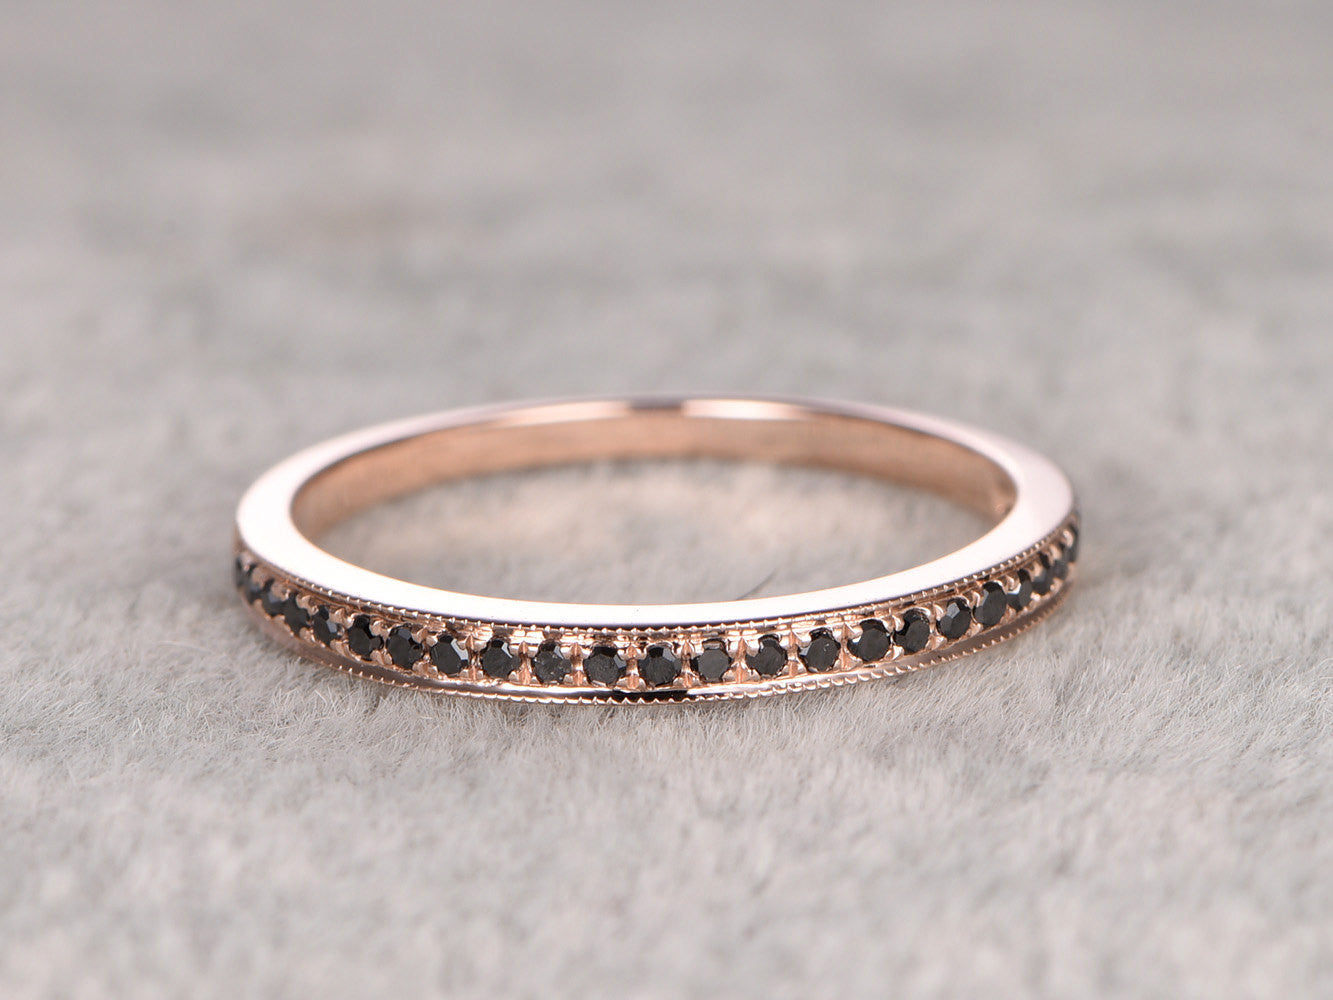 Black Diamond Wedding Ring,Solid 14K Rose gold,Anniversary Ring,Half Eternity Band,stacking ring,milgrain,Matching band,Micro pave,Fine band